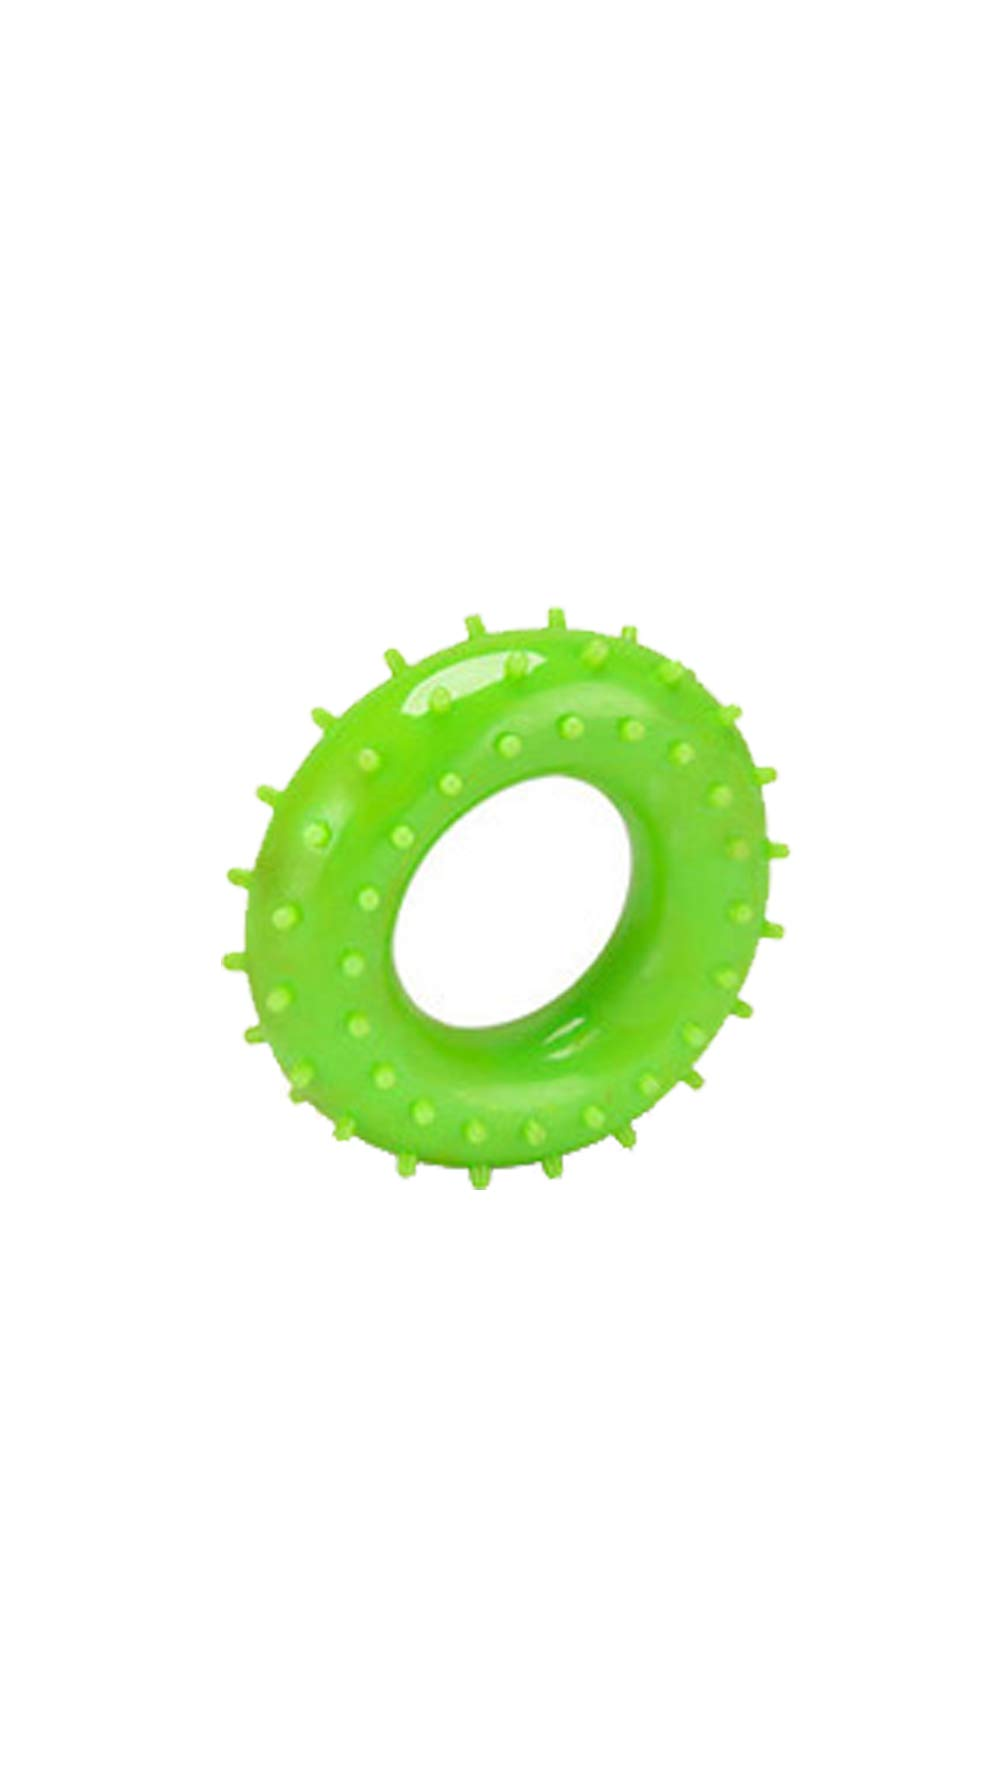 XinHeChengMai Environmental Protection PVC Grip Ring Middle-Aged Finger Rehabilitation Equipment Rubber Ring O-Type Grip Office Fitness Exercise(Green,60mm)